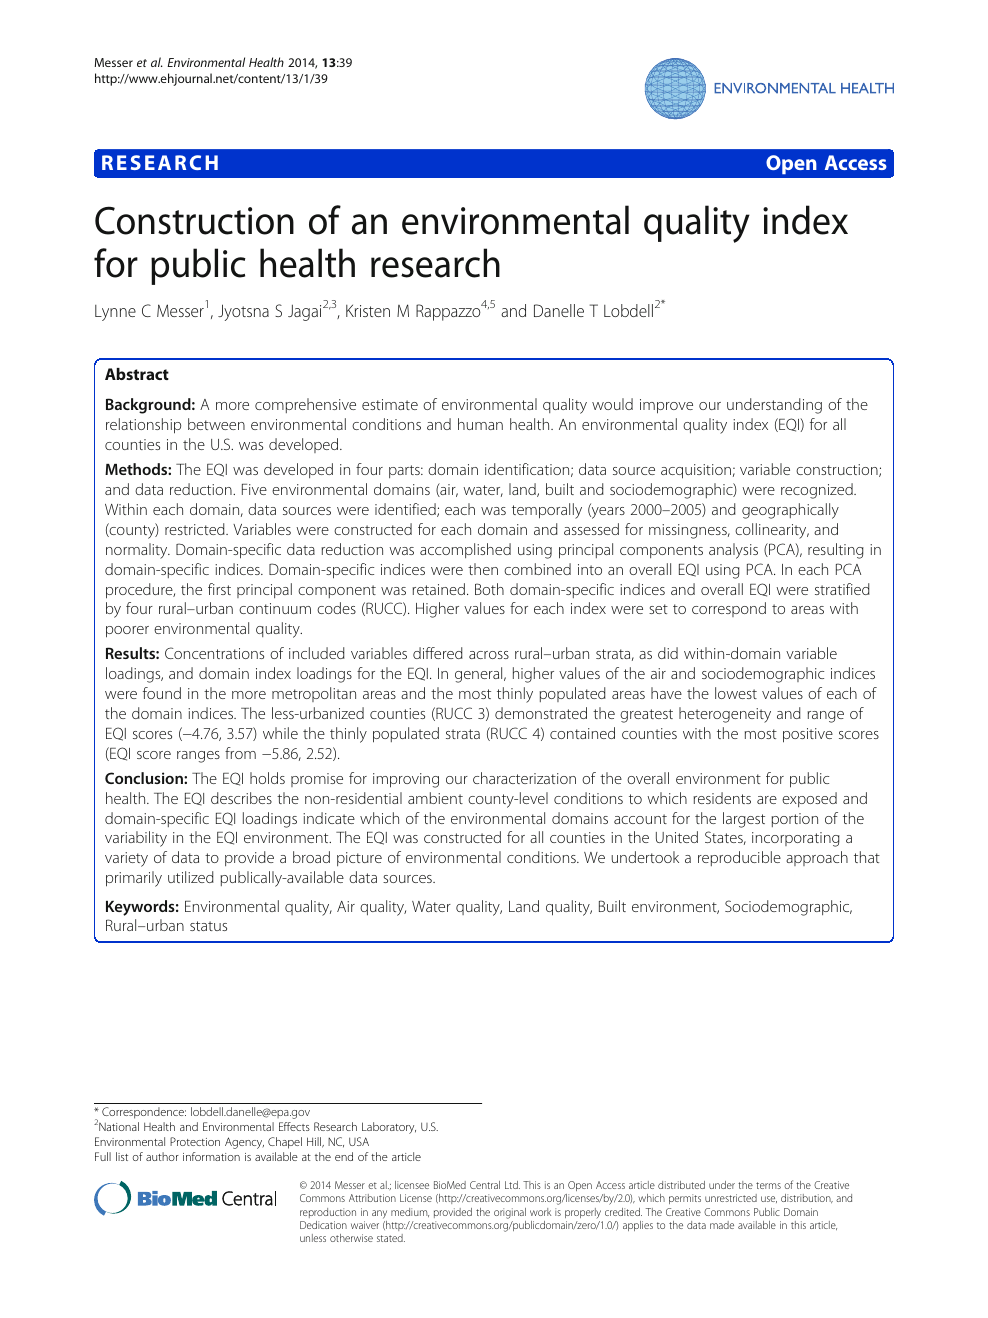 Construction of an environmental quality index for public